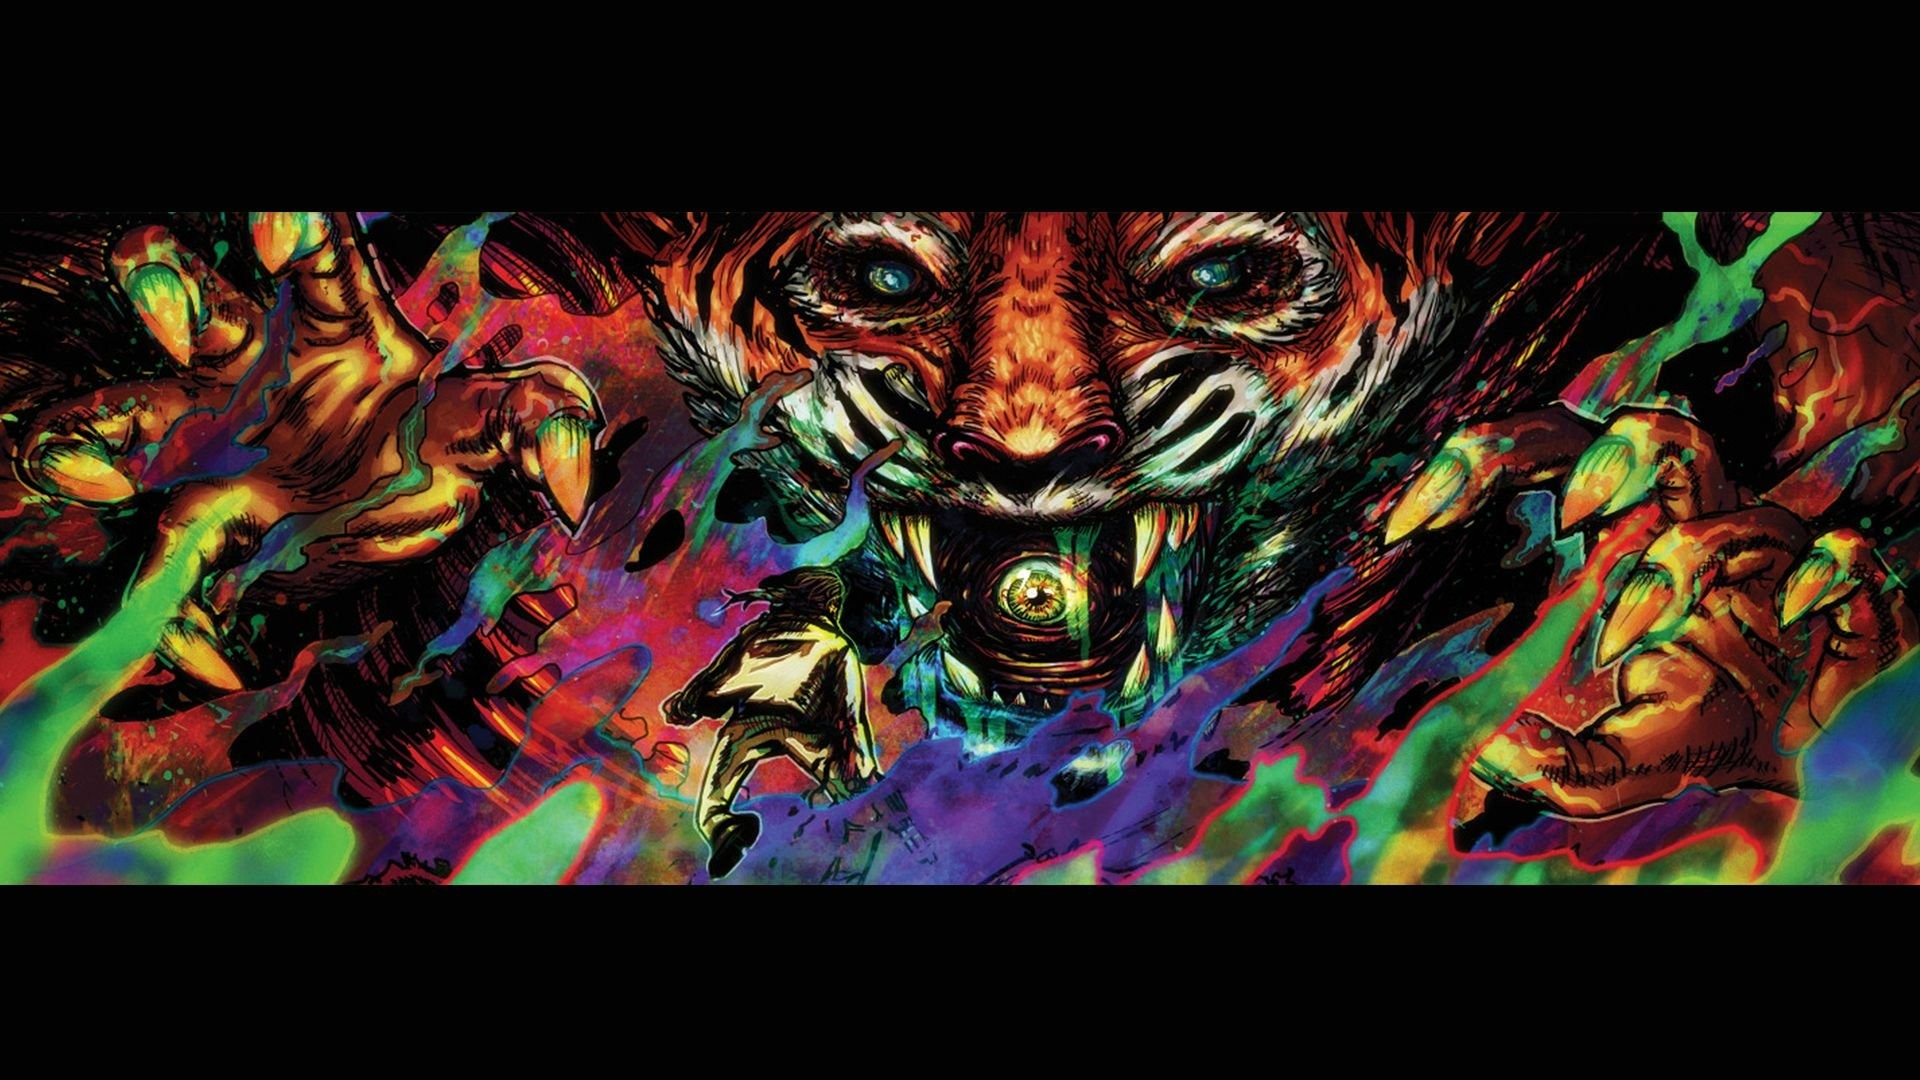 HOTLINE-MIAMI action shooter fighting hotline miami payday wallpaper .